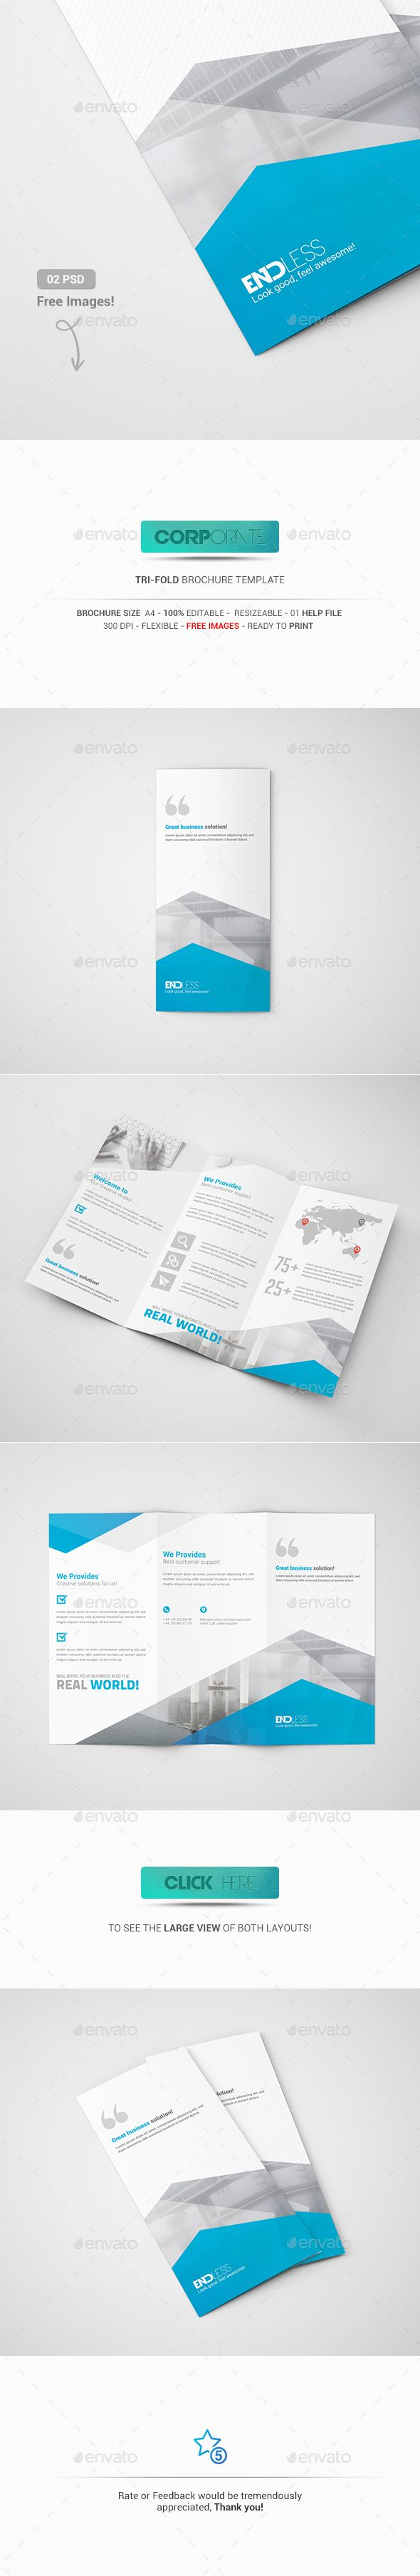 Tri-Fold Brochure Template PSD #design Download: http://graphicriver.net/item/trifold-brochure/13529405?ref=ksioks